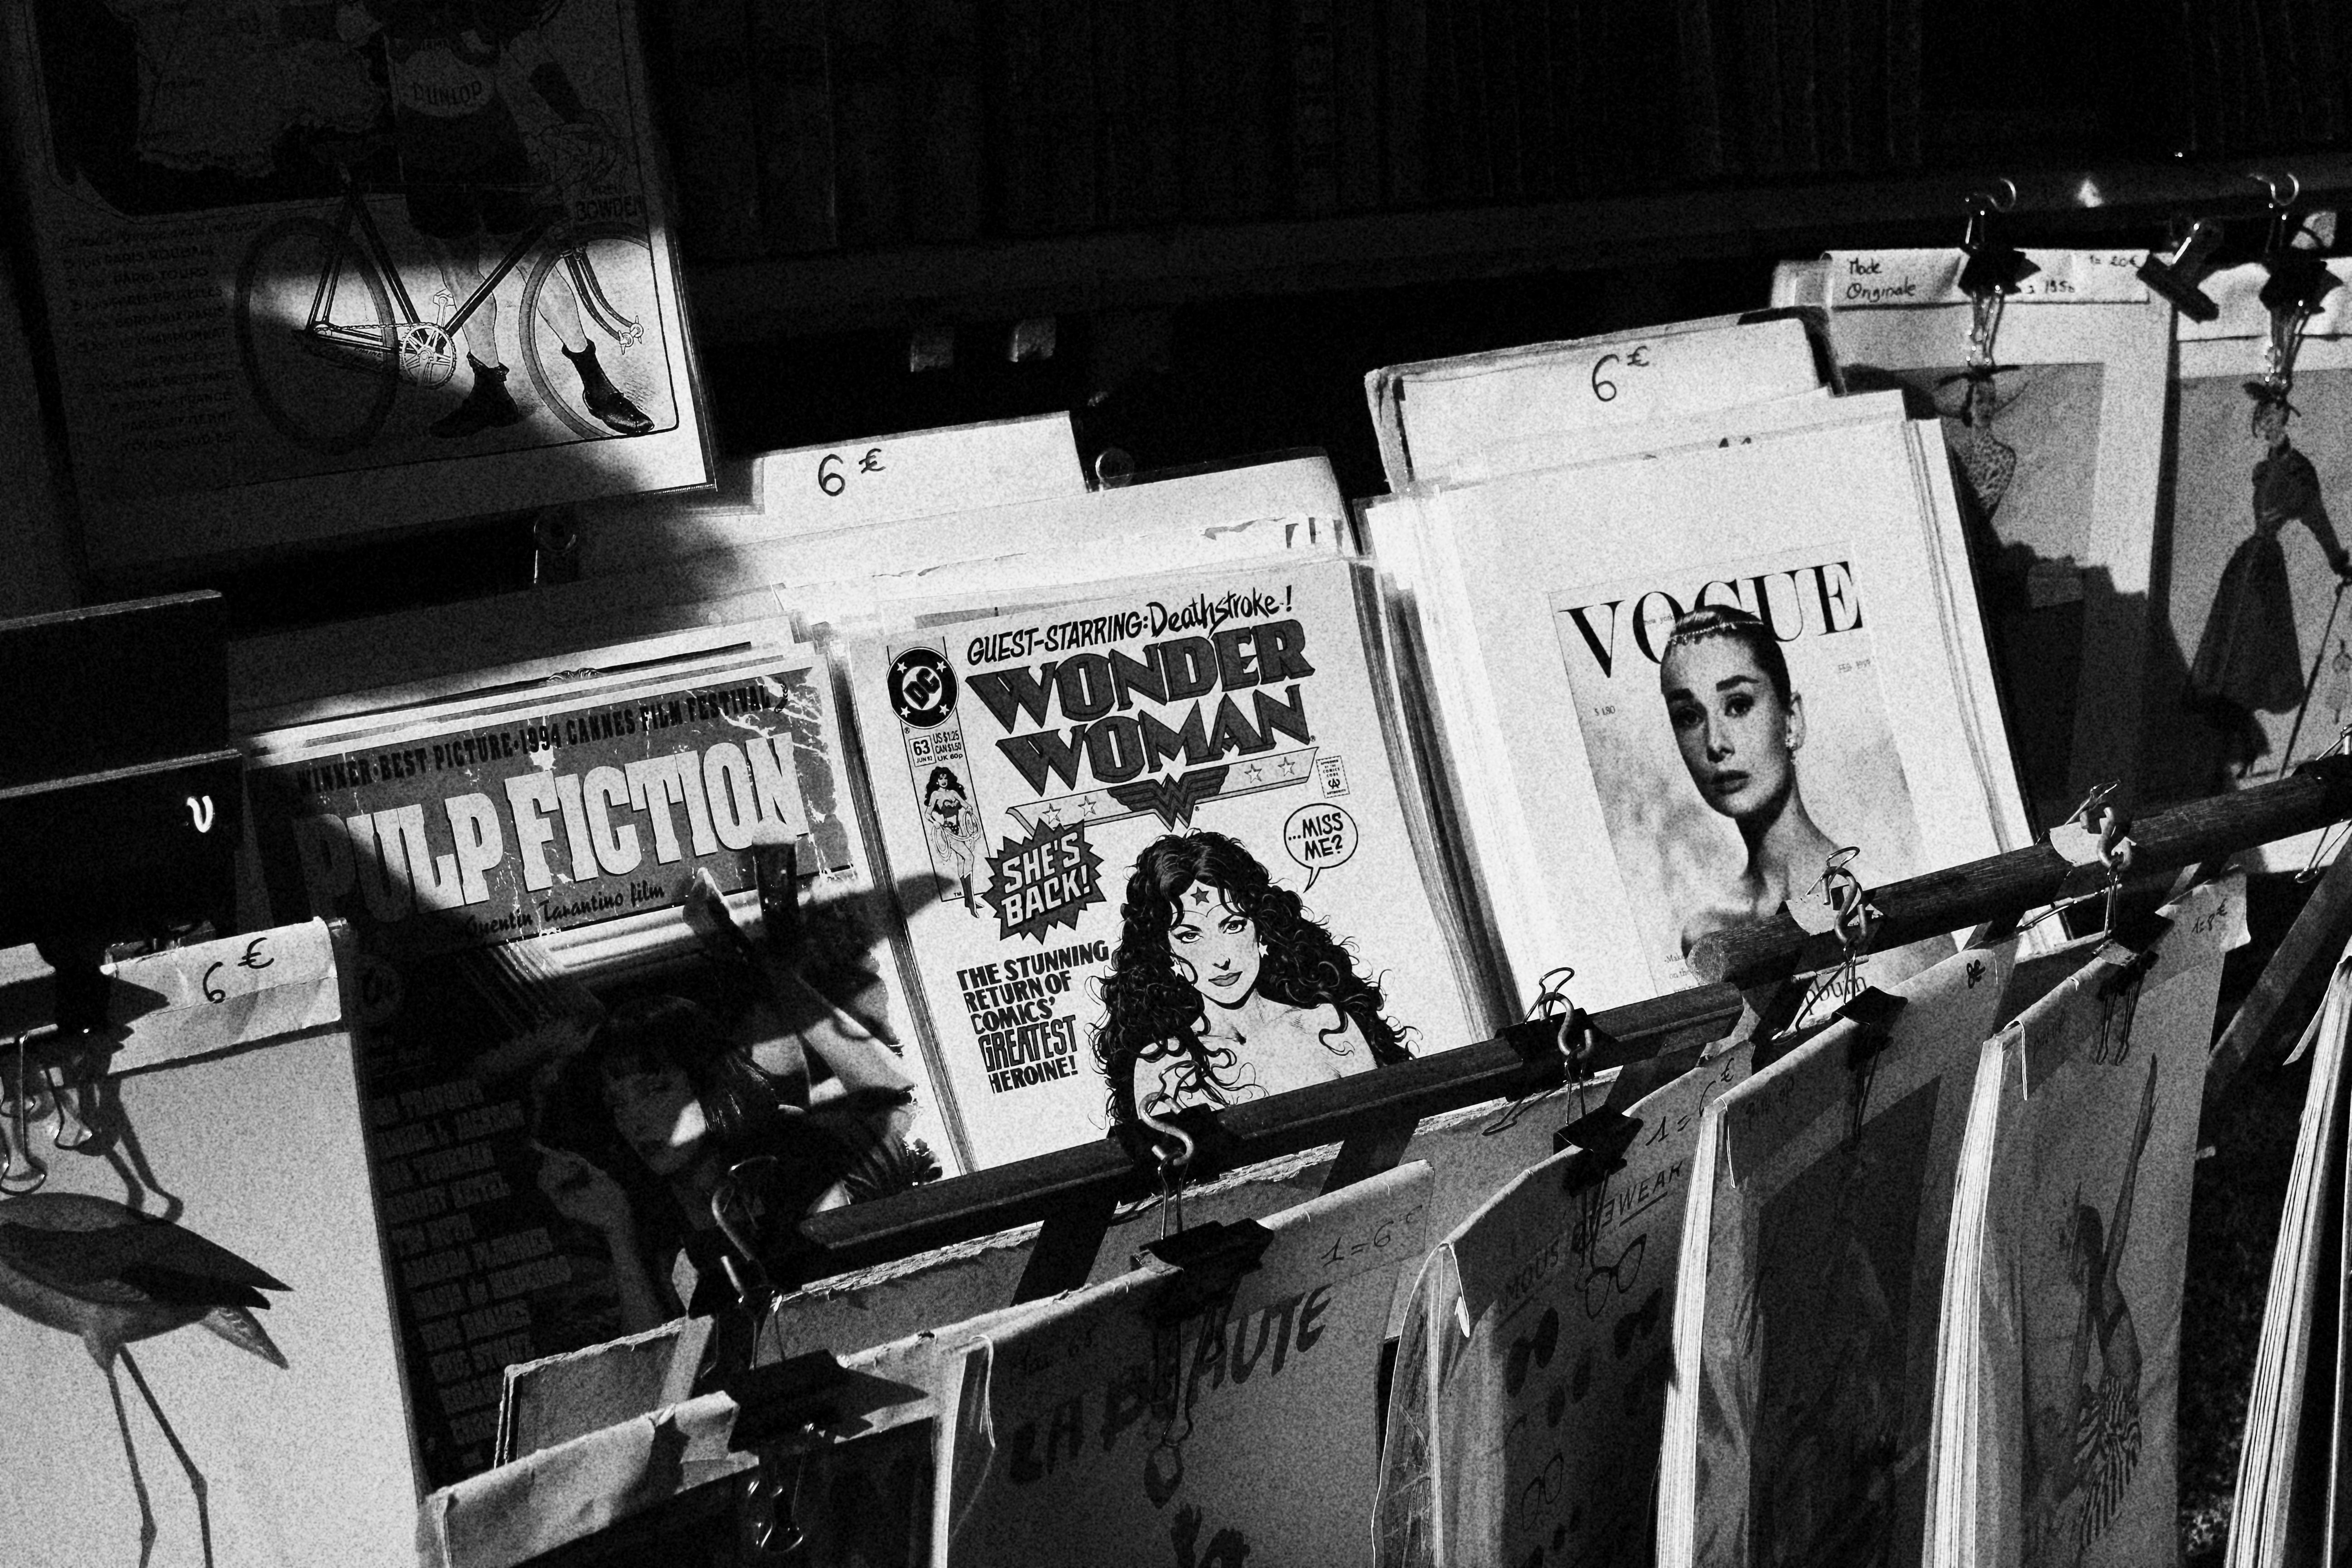 grayscale photo of magazines on rack